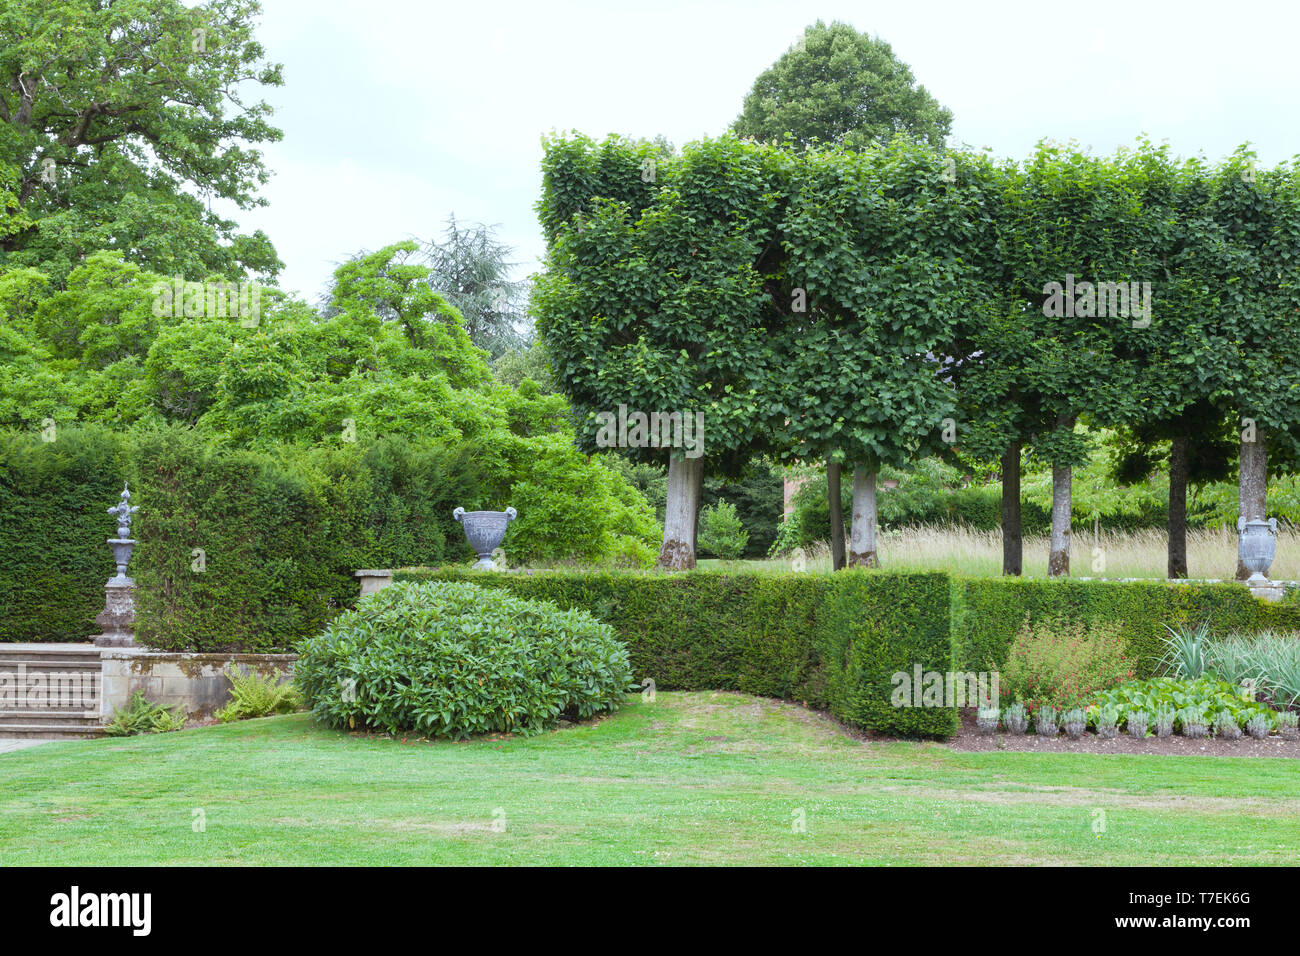 Landscaped garden trimmed hedge, leafy trees, evergreen shrubs, ornamental flower pots, on a sunny summer day in an English countryside . - Stock Image